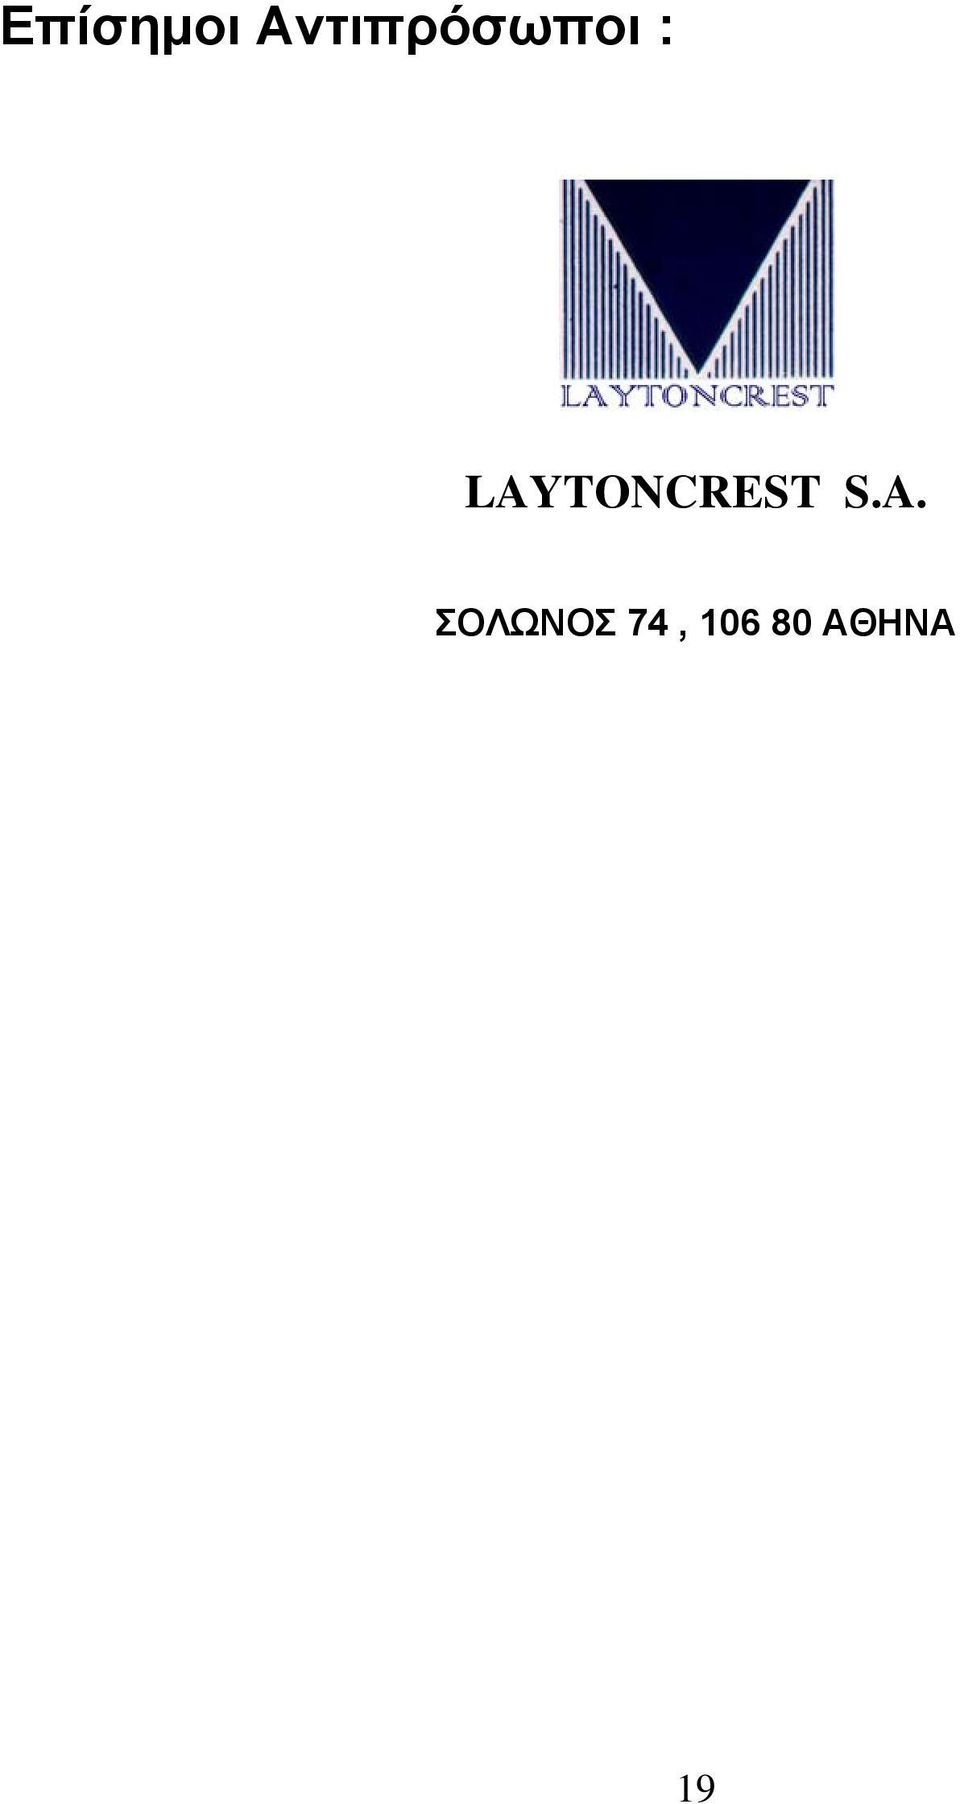 LAYTONCREST S.A.